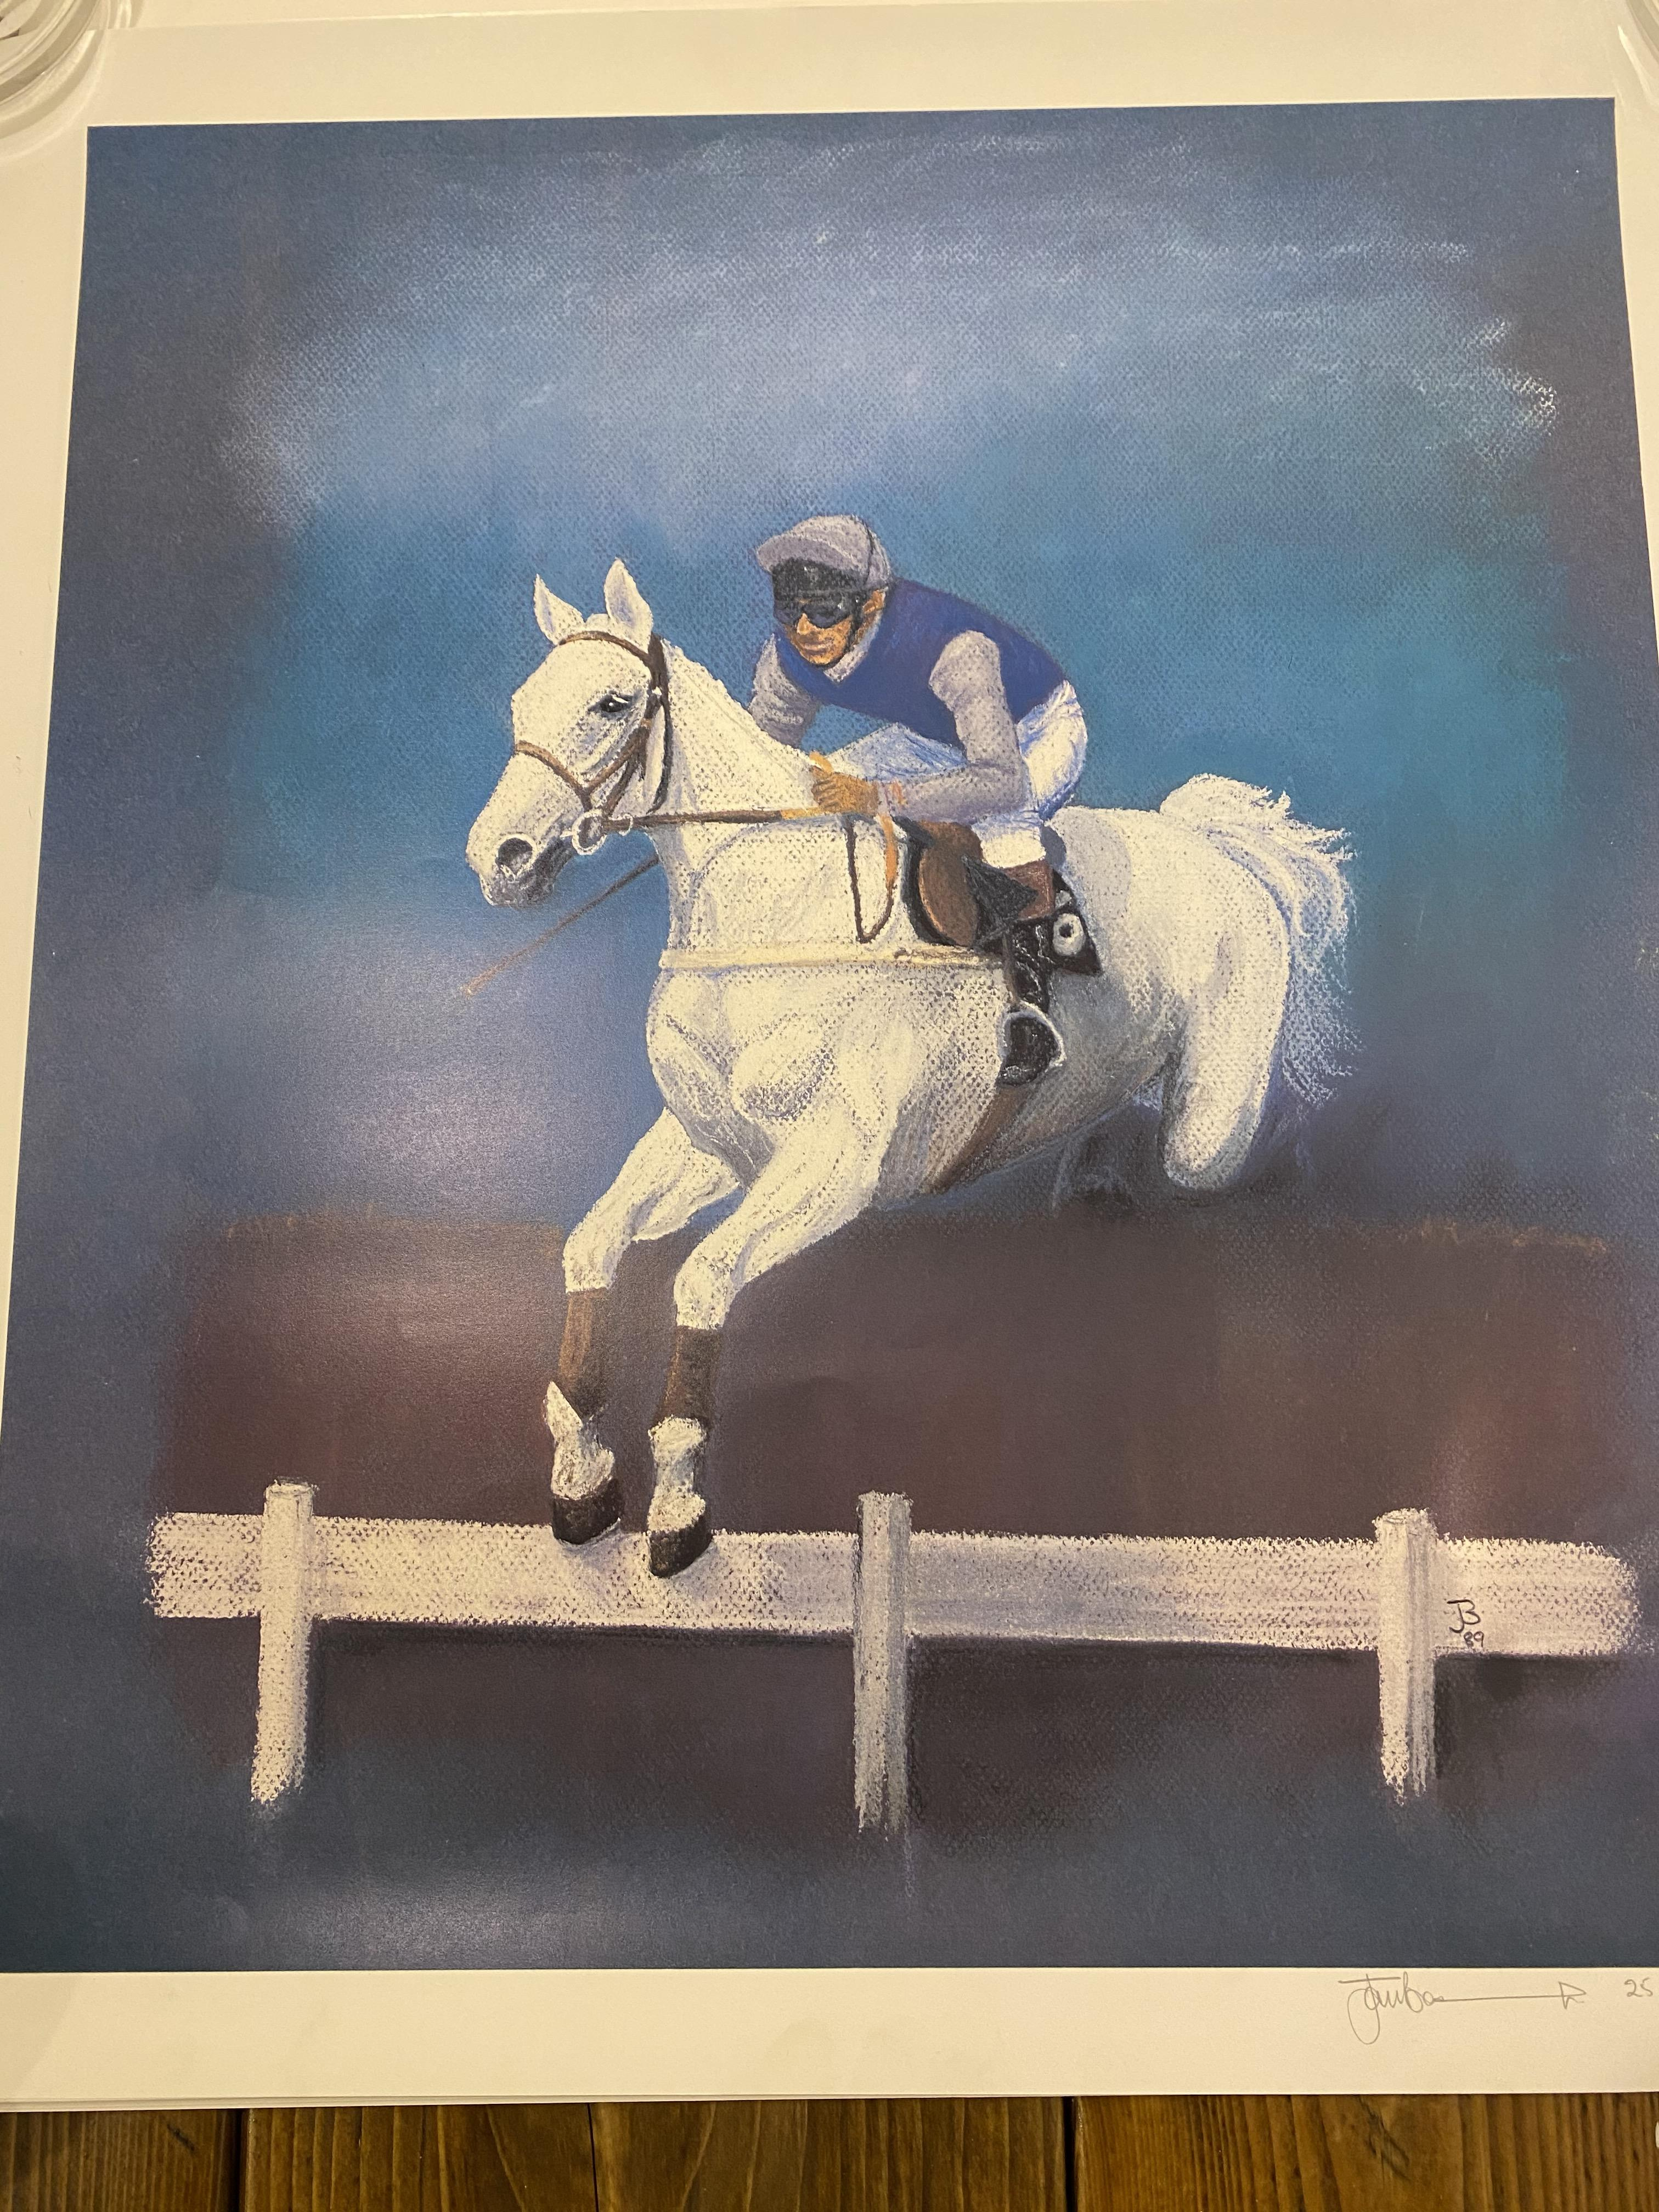 Desert Orchid Limited Edition Print by J.F.Beaumont #38/250 1989